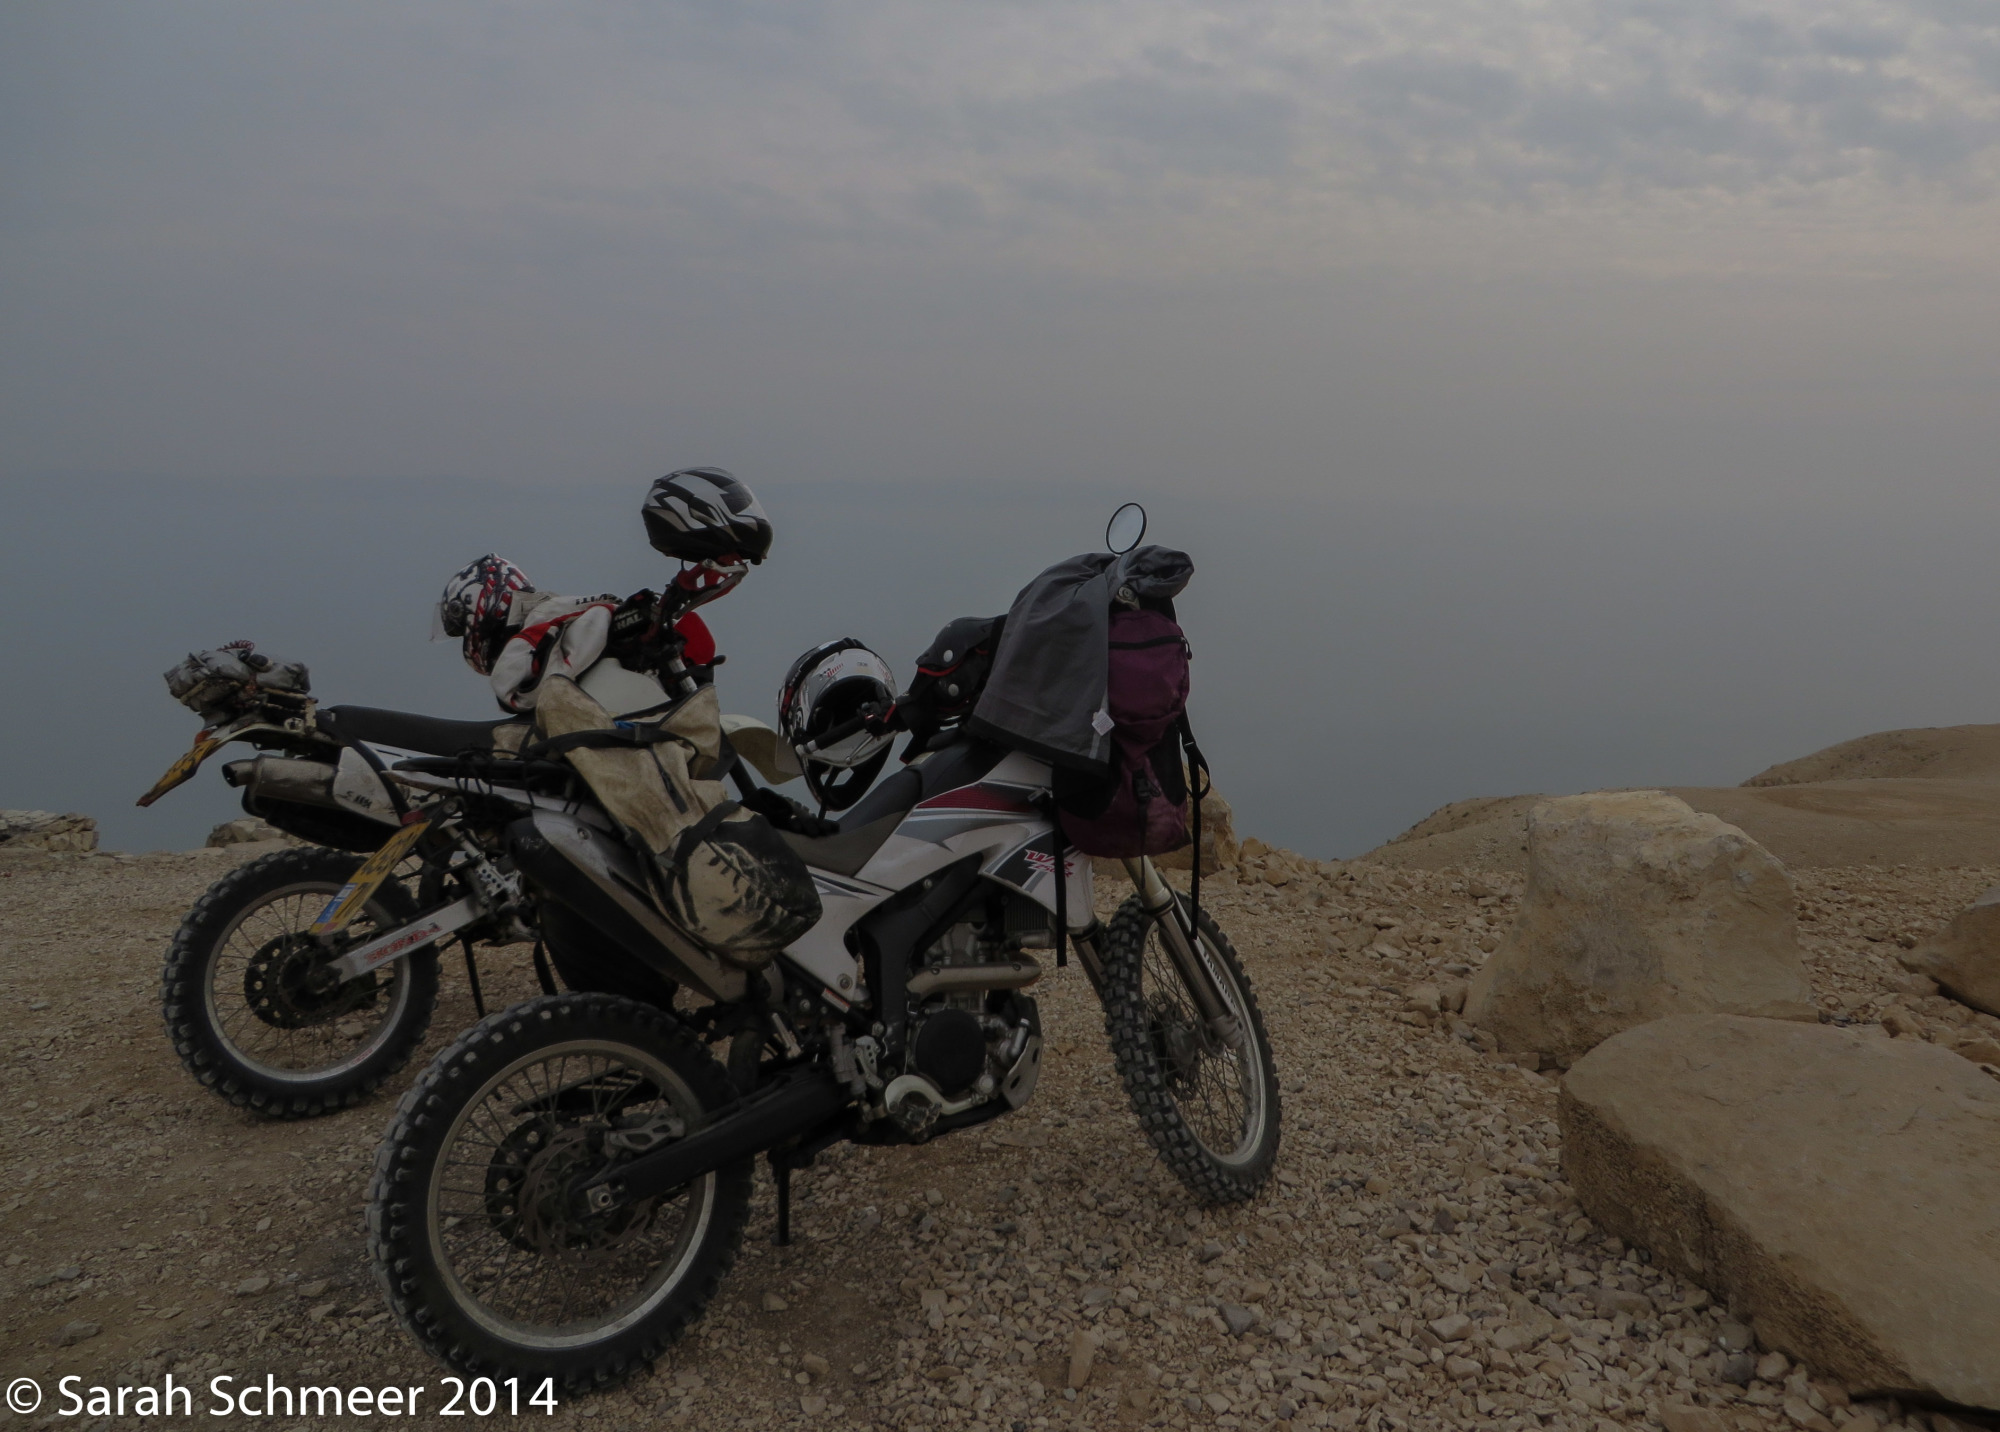 Parked the bikes at an overlook of the Dead Sea